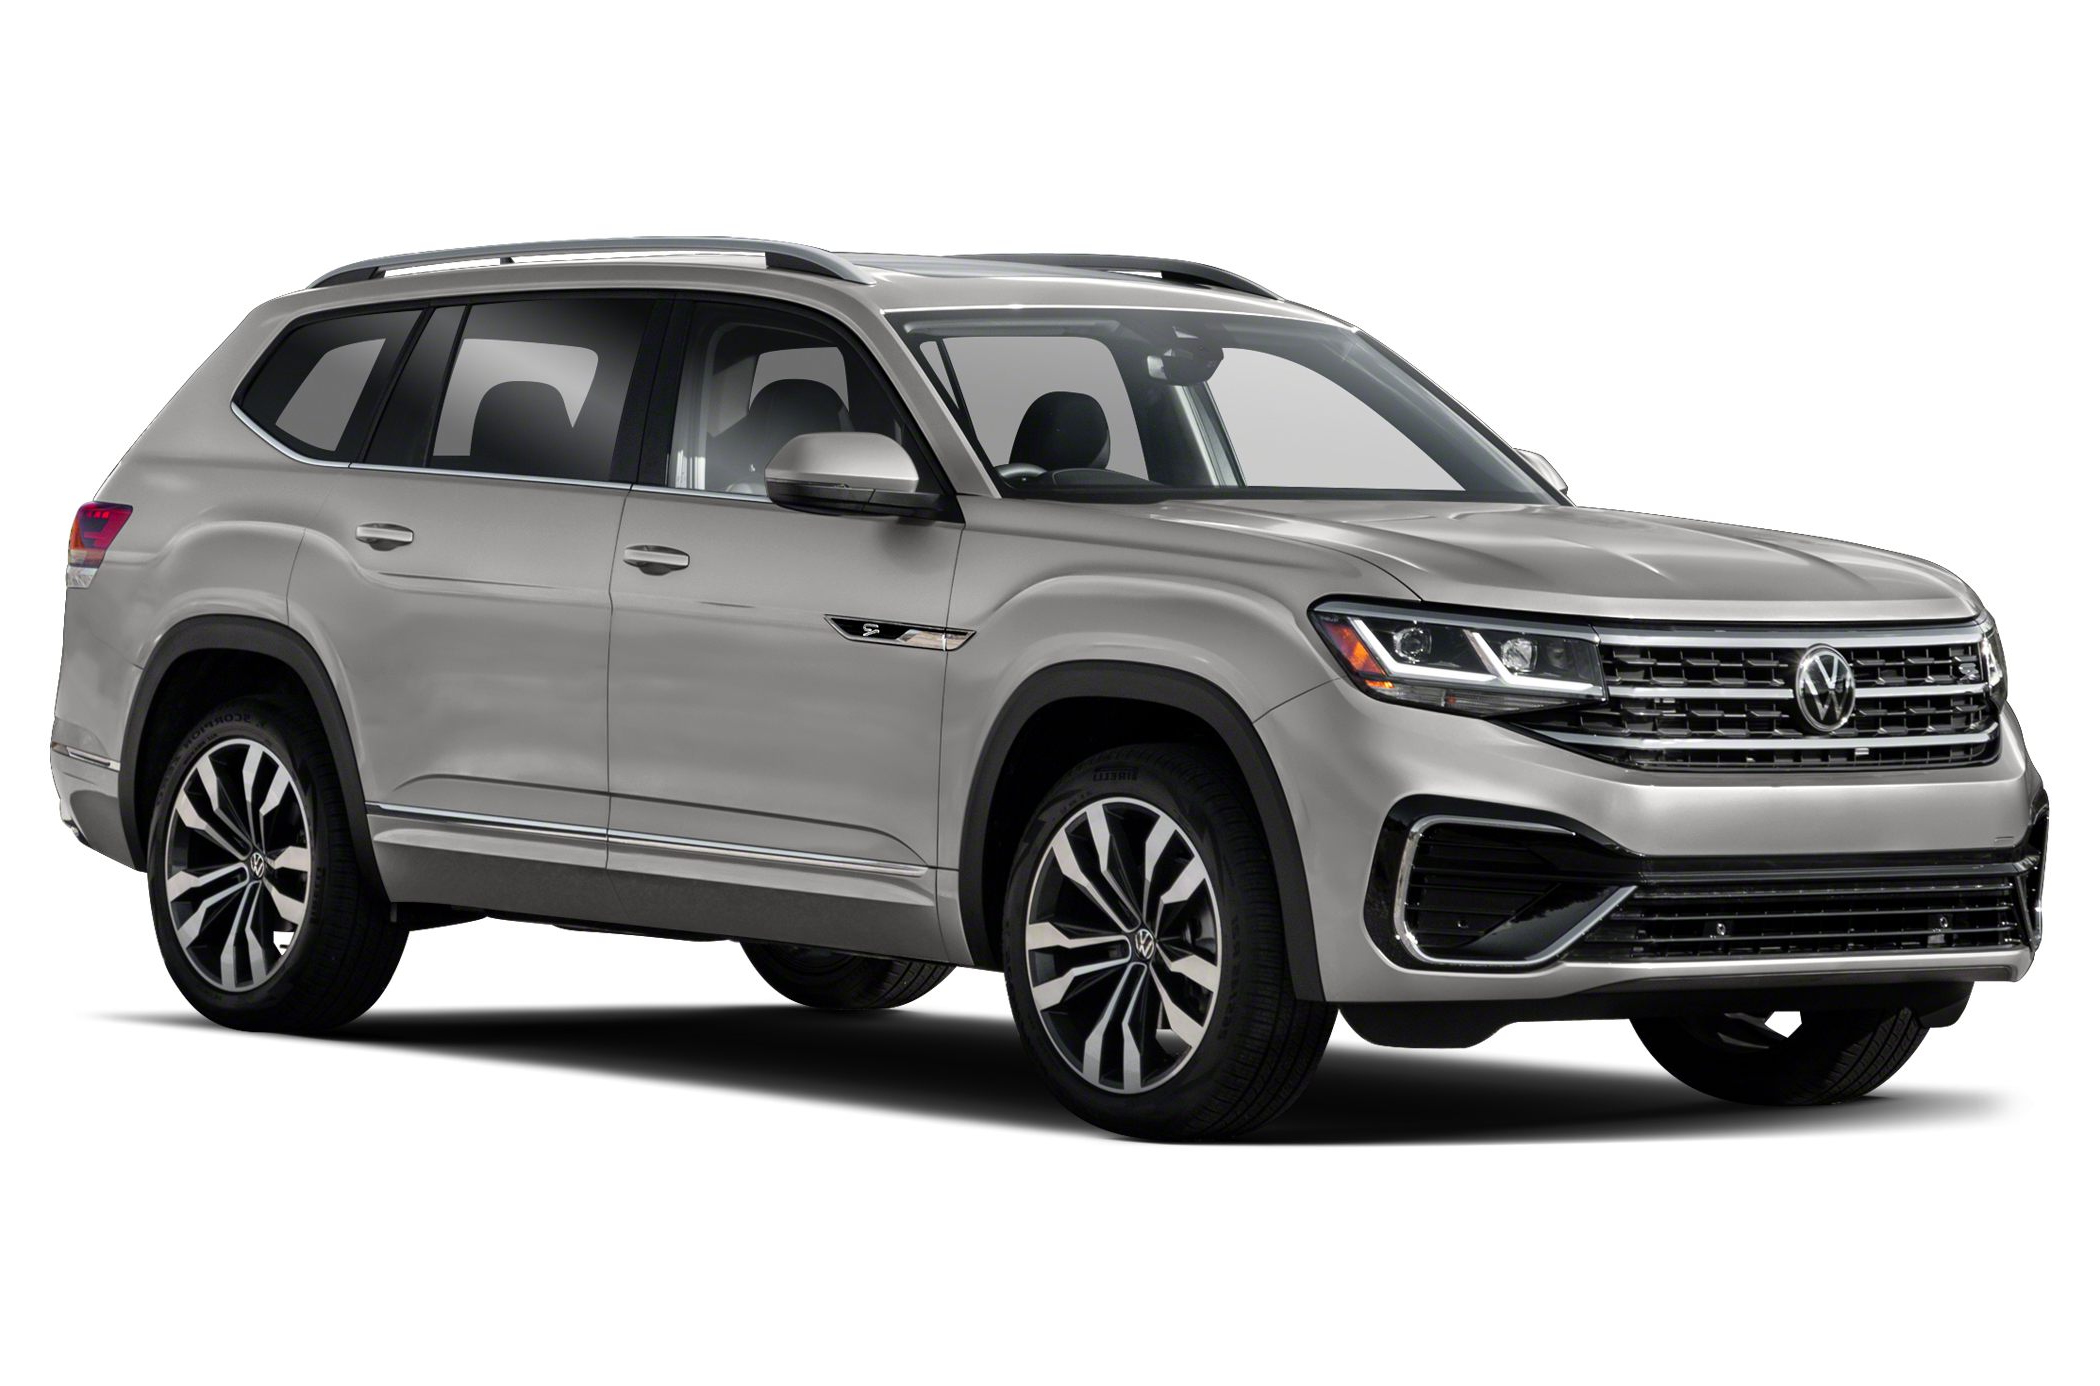 2021 Volkswagen Atlas 3.6L V6 Sel Premium R-Line 4Dr All-Wheel Drive  4Motion Pricing And Options